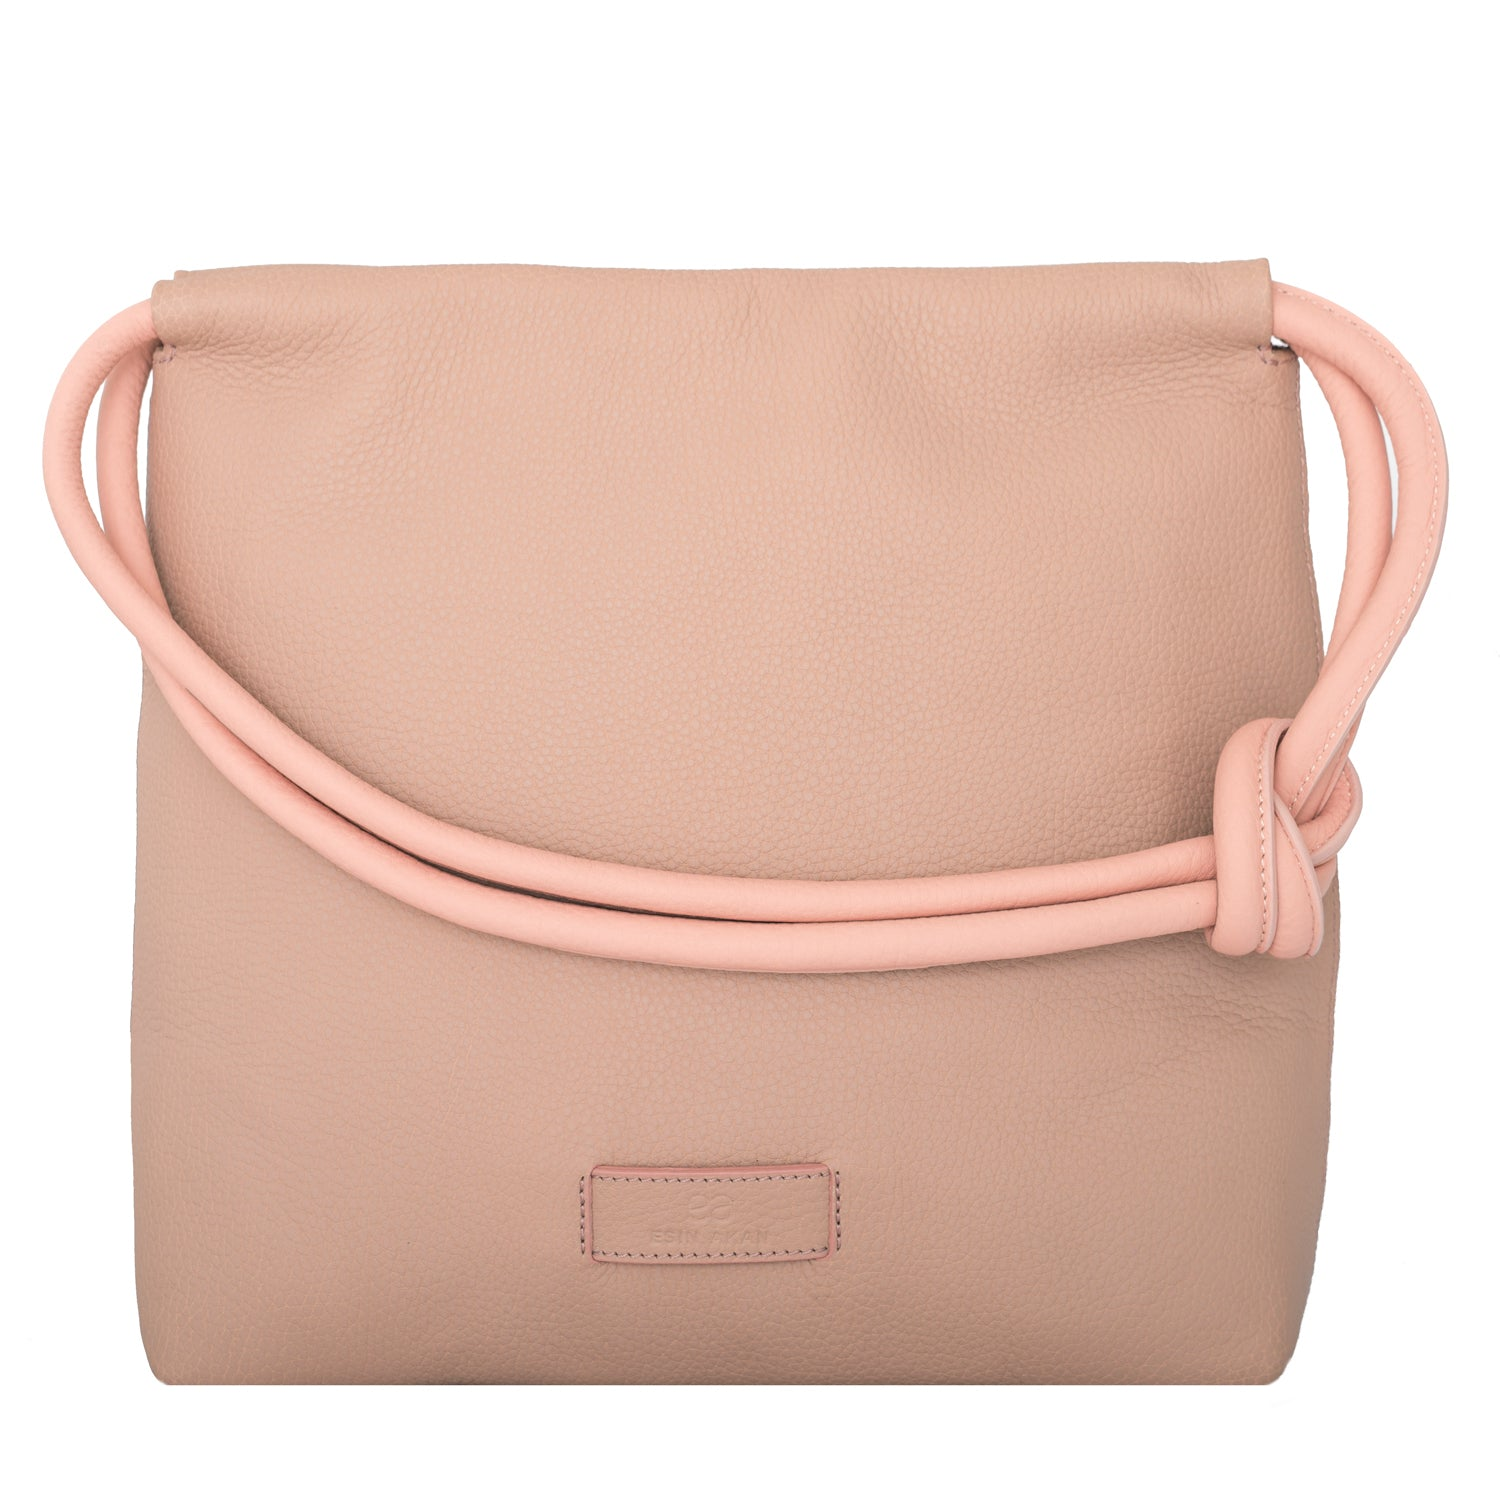 A convertible leather pink shoulder bag for women with a knot detail on the strap that could be used as a clutch bag with its roll down feature, front image.